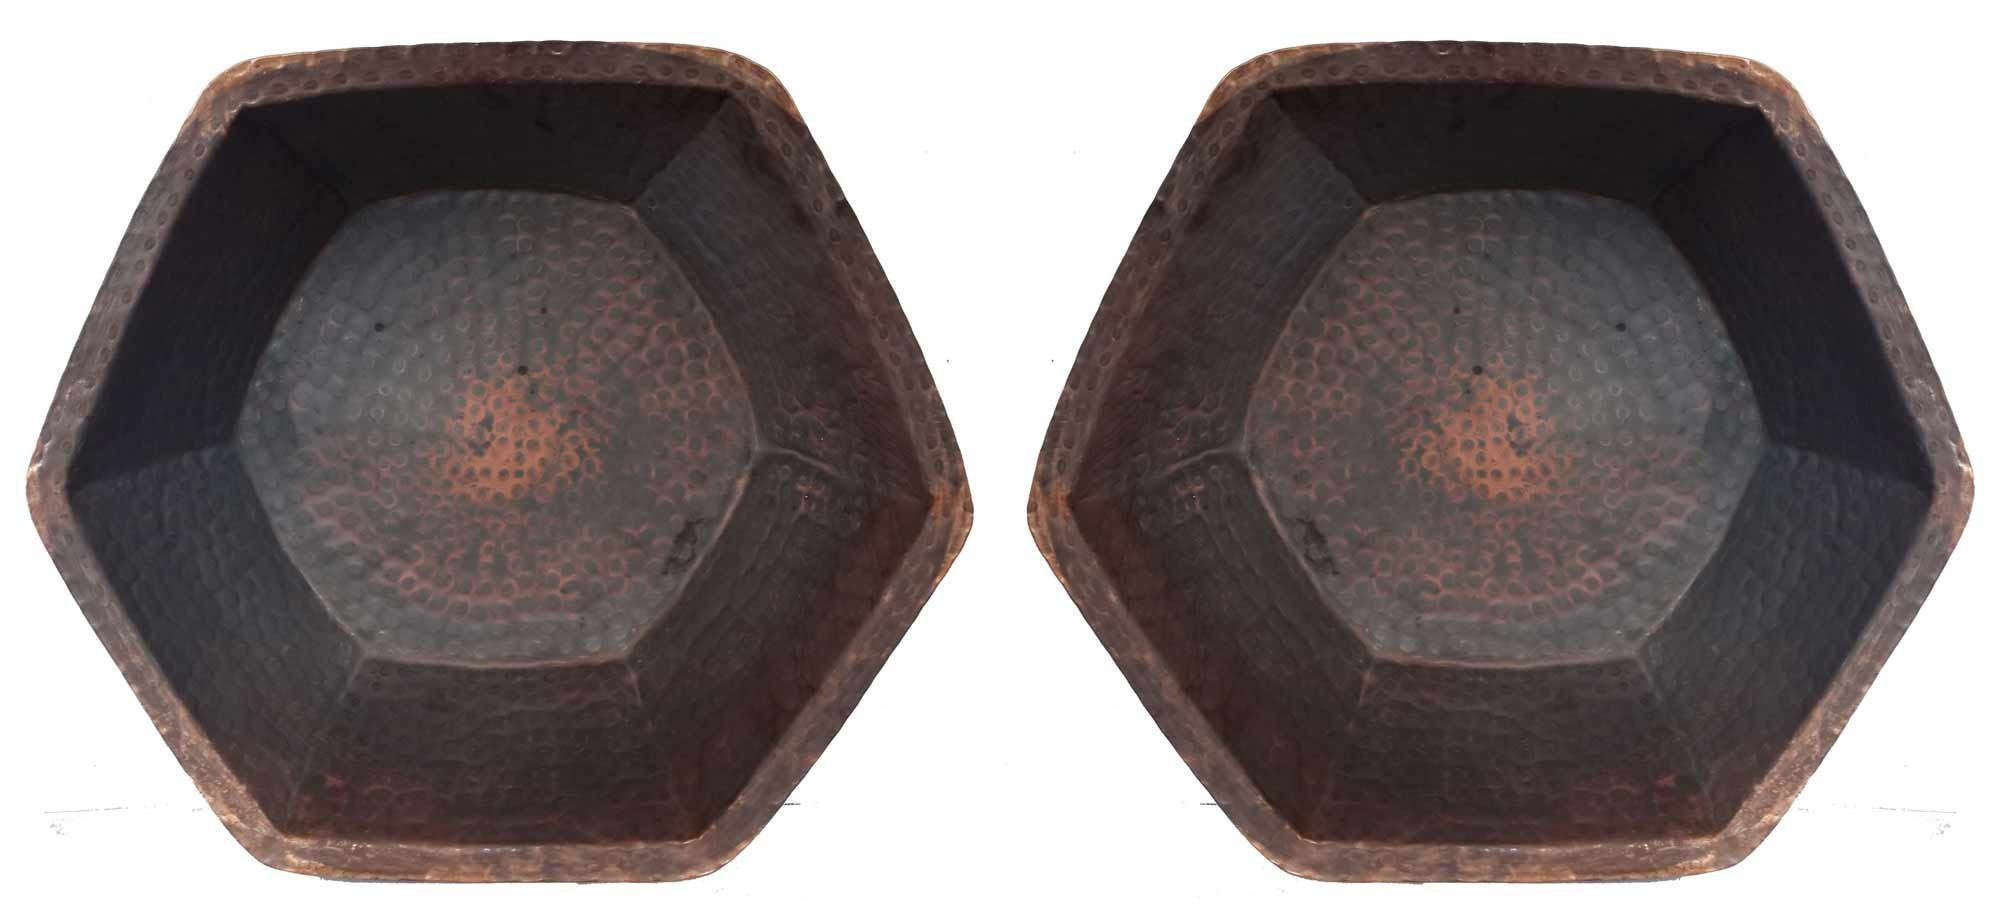 Egypt gift shops Pair Hexagonal Rustic Tempered Matte Copper Basins Foot Leg Calf Knee Massage Bath Pedicure Spa Beauty Salon Bowls Fungus Infections Corns Bunions Medical Care